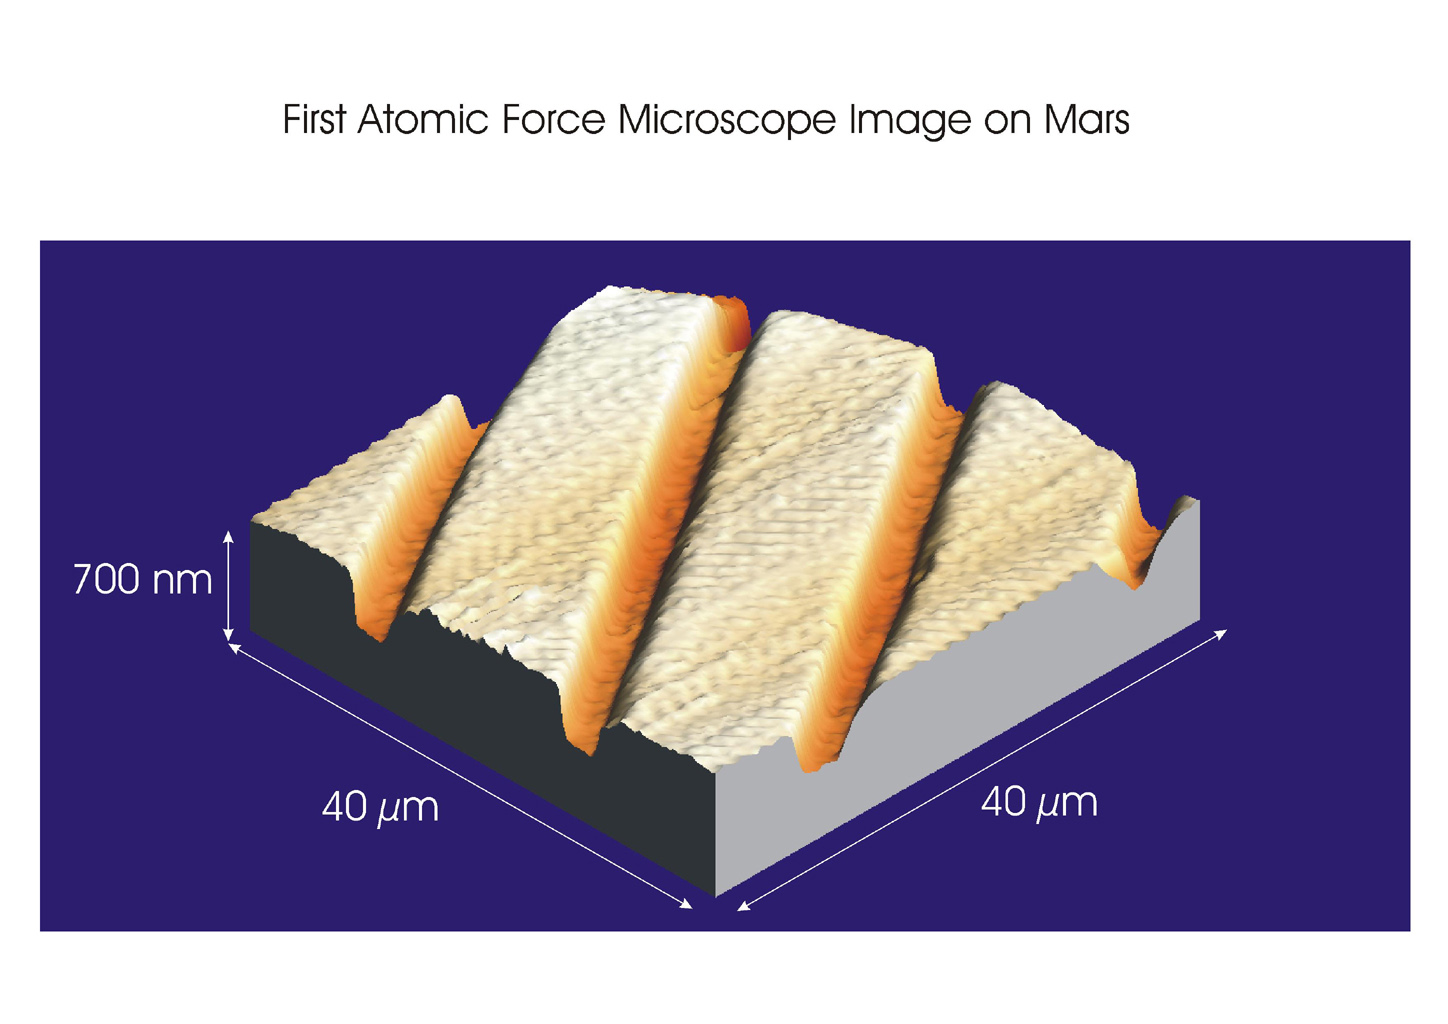 Space Images | First Atomic Force Microscope Image from Mars